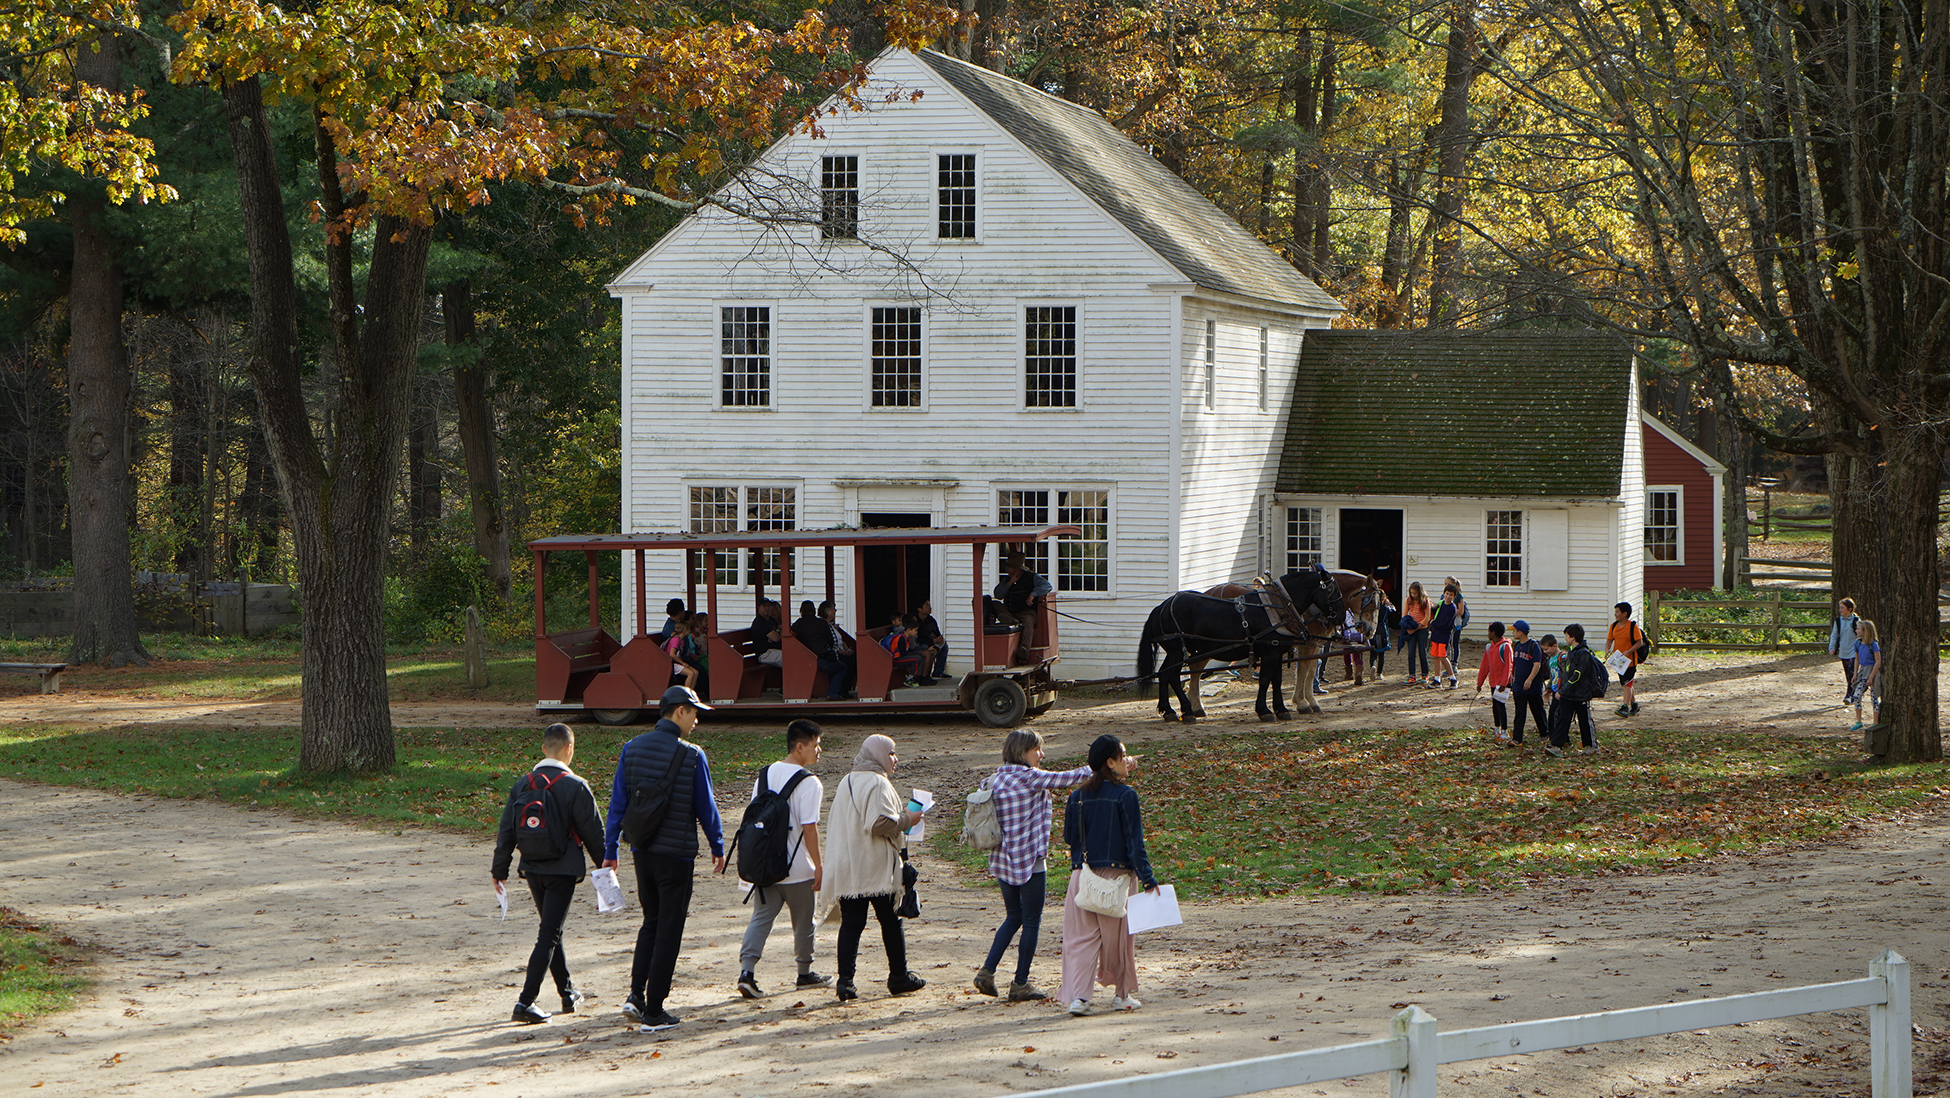 Visitors to Old Sturbridge Village